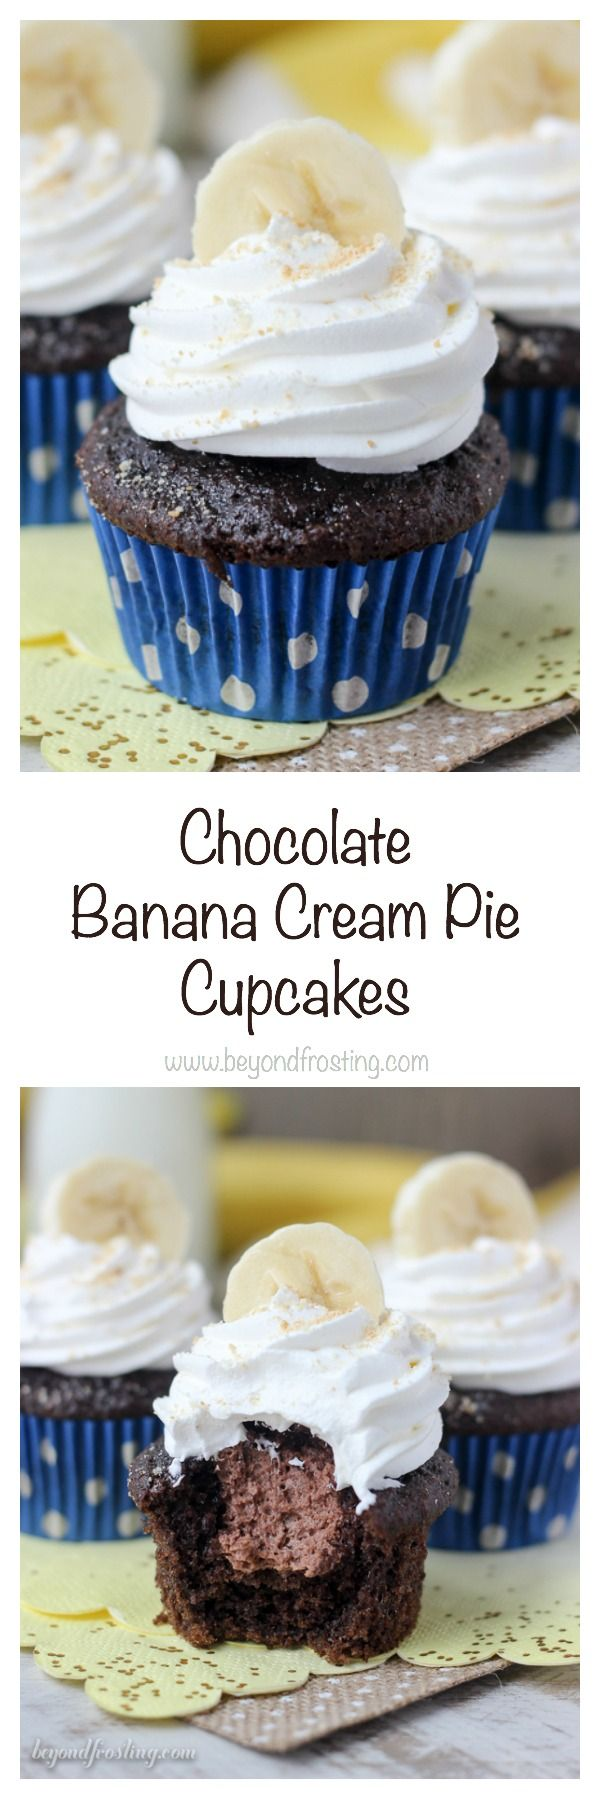 These chocolate banana cream pie cupcakes are made with a chocolate banana cupcake and filled with a chocolate mousse. Top them off with some whipped cream, bananas and Nilla Wafers.